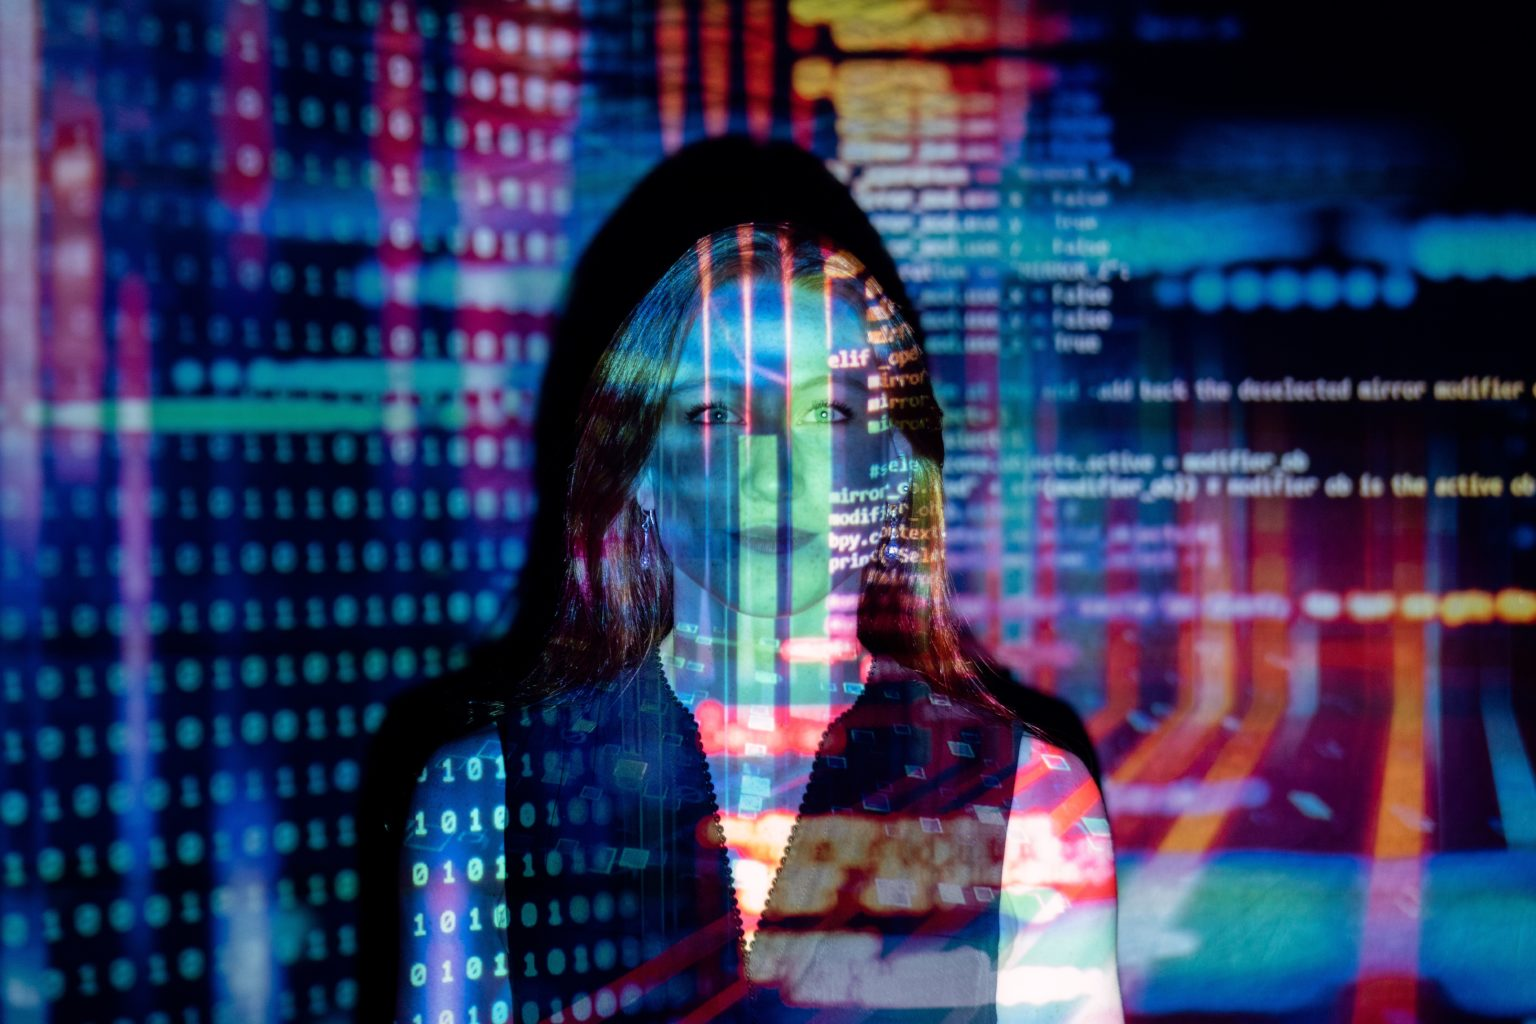 code-projected-over-woman-3861969-1536x1024